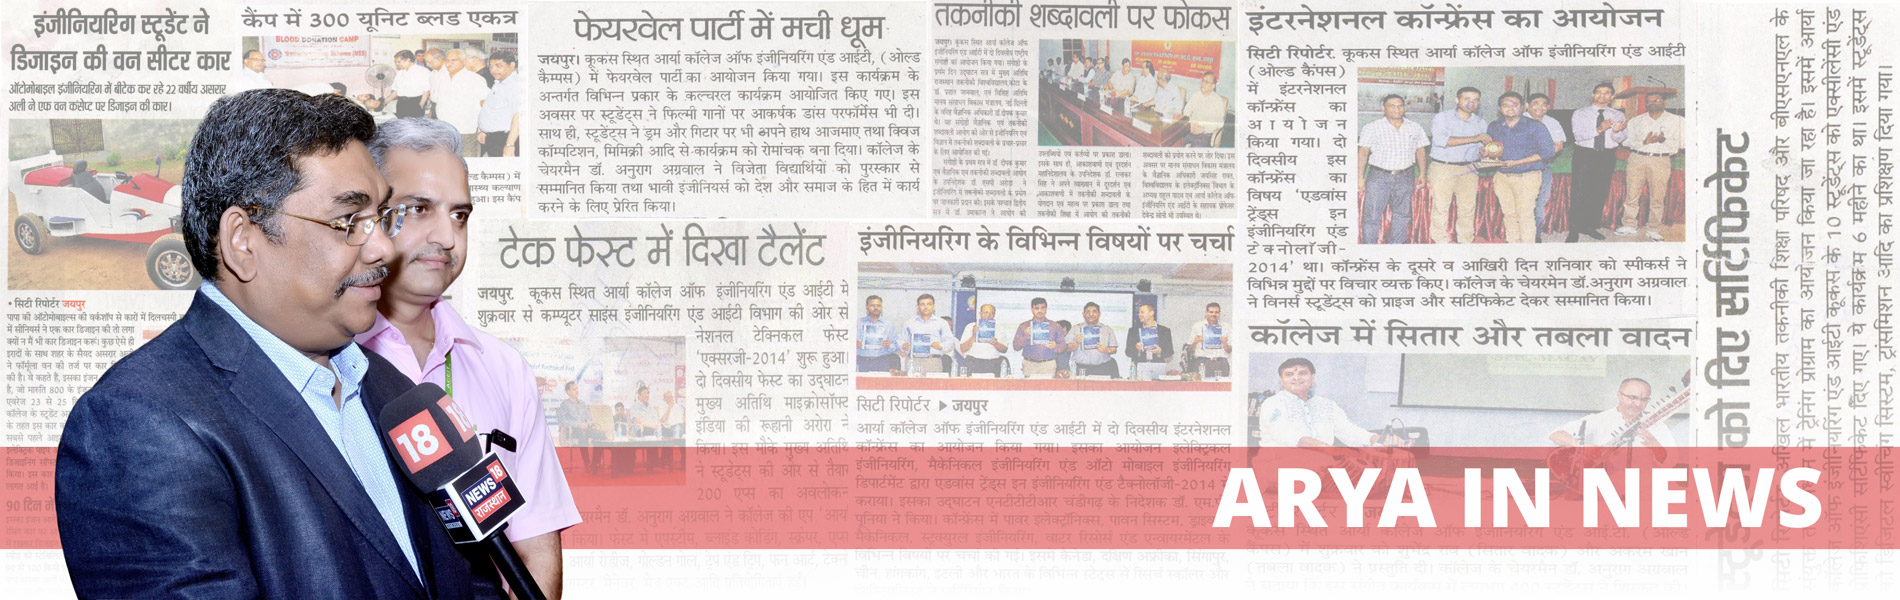 NEWS Details of Arya College Jaipur